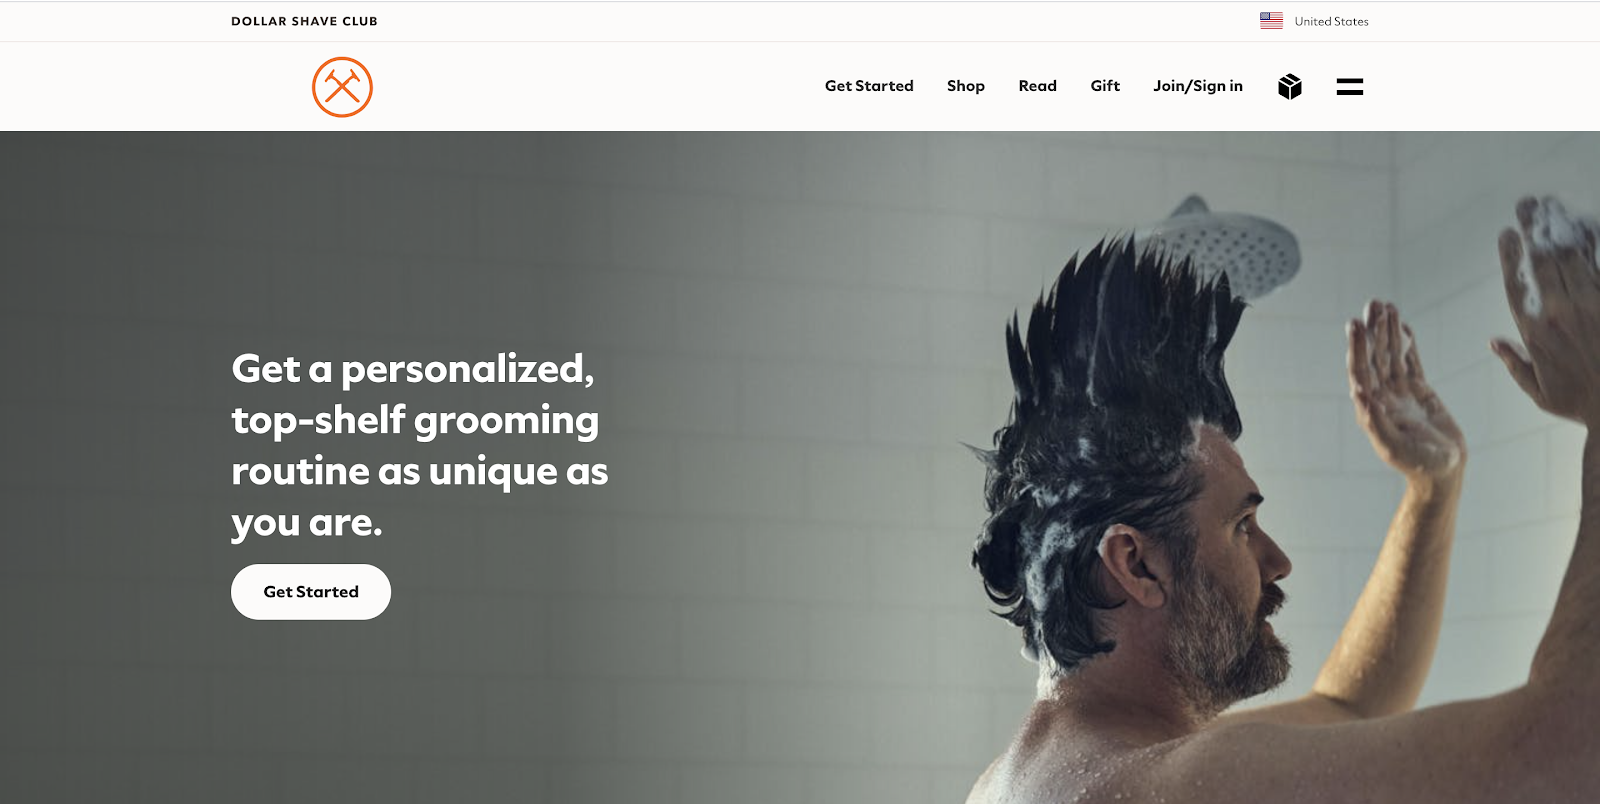 Dollar Shave Club — An example of subscription-based ecommerce